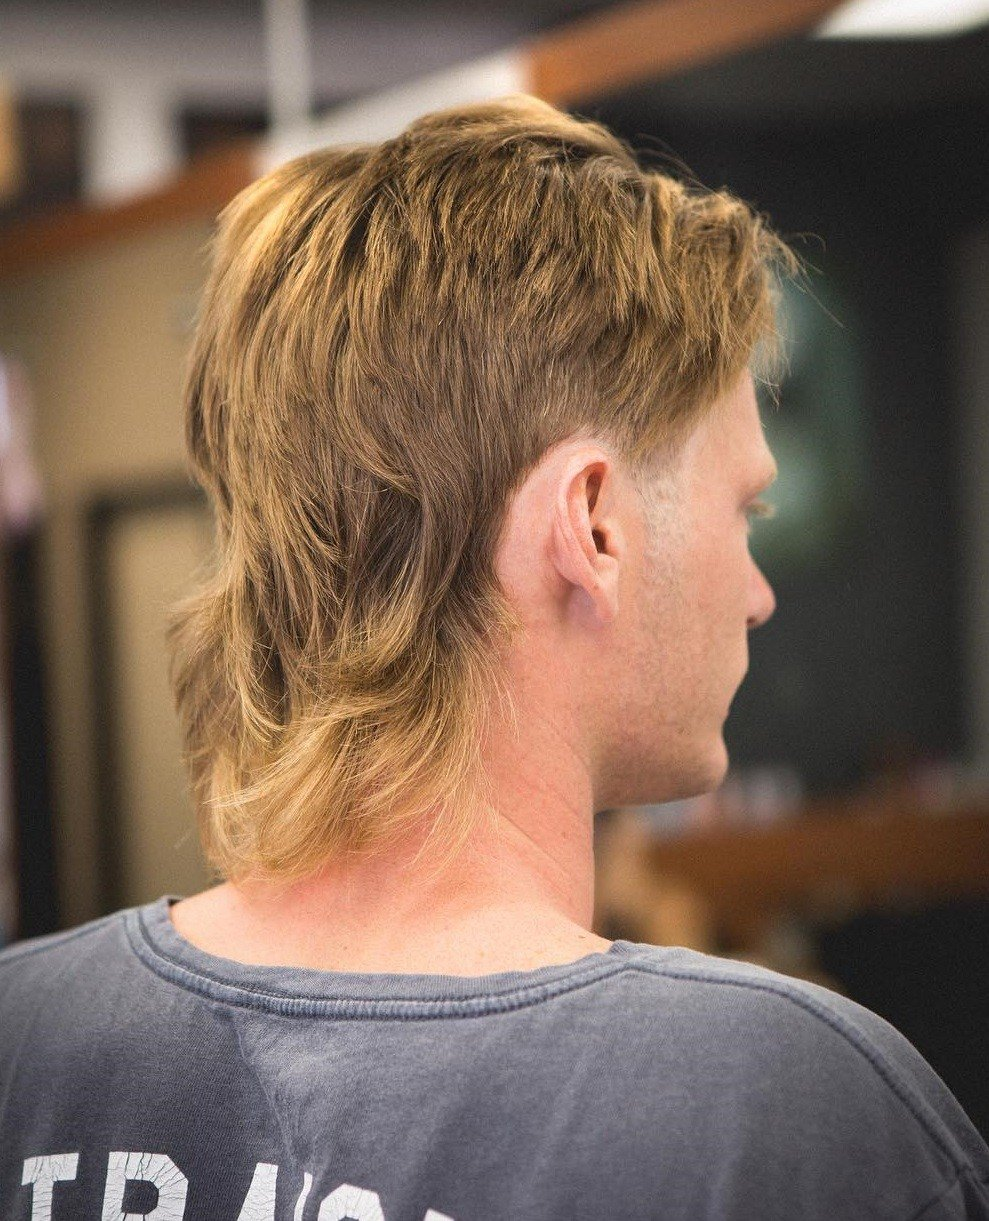 The Best Mullet Haircuts Party In The Back Business In The Front Pictures